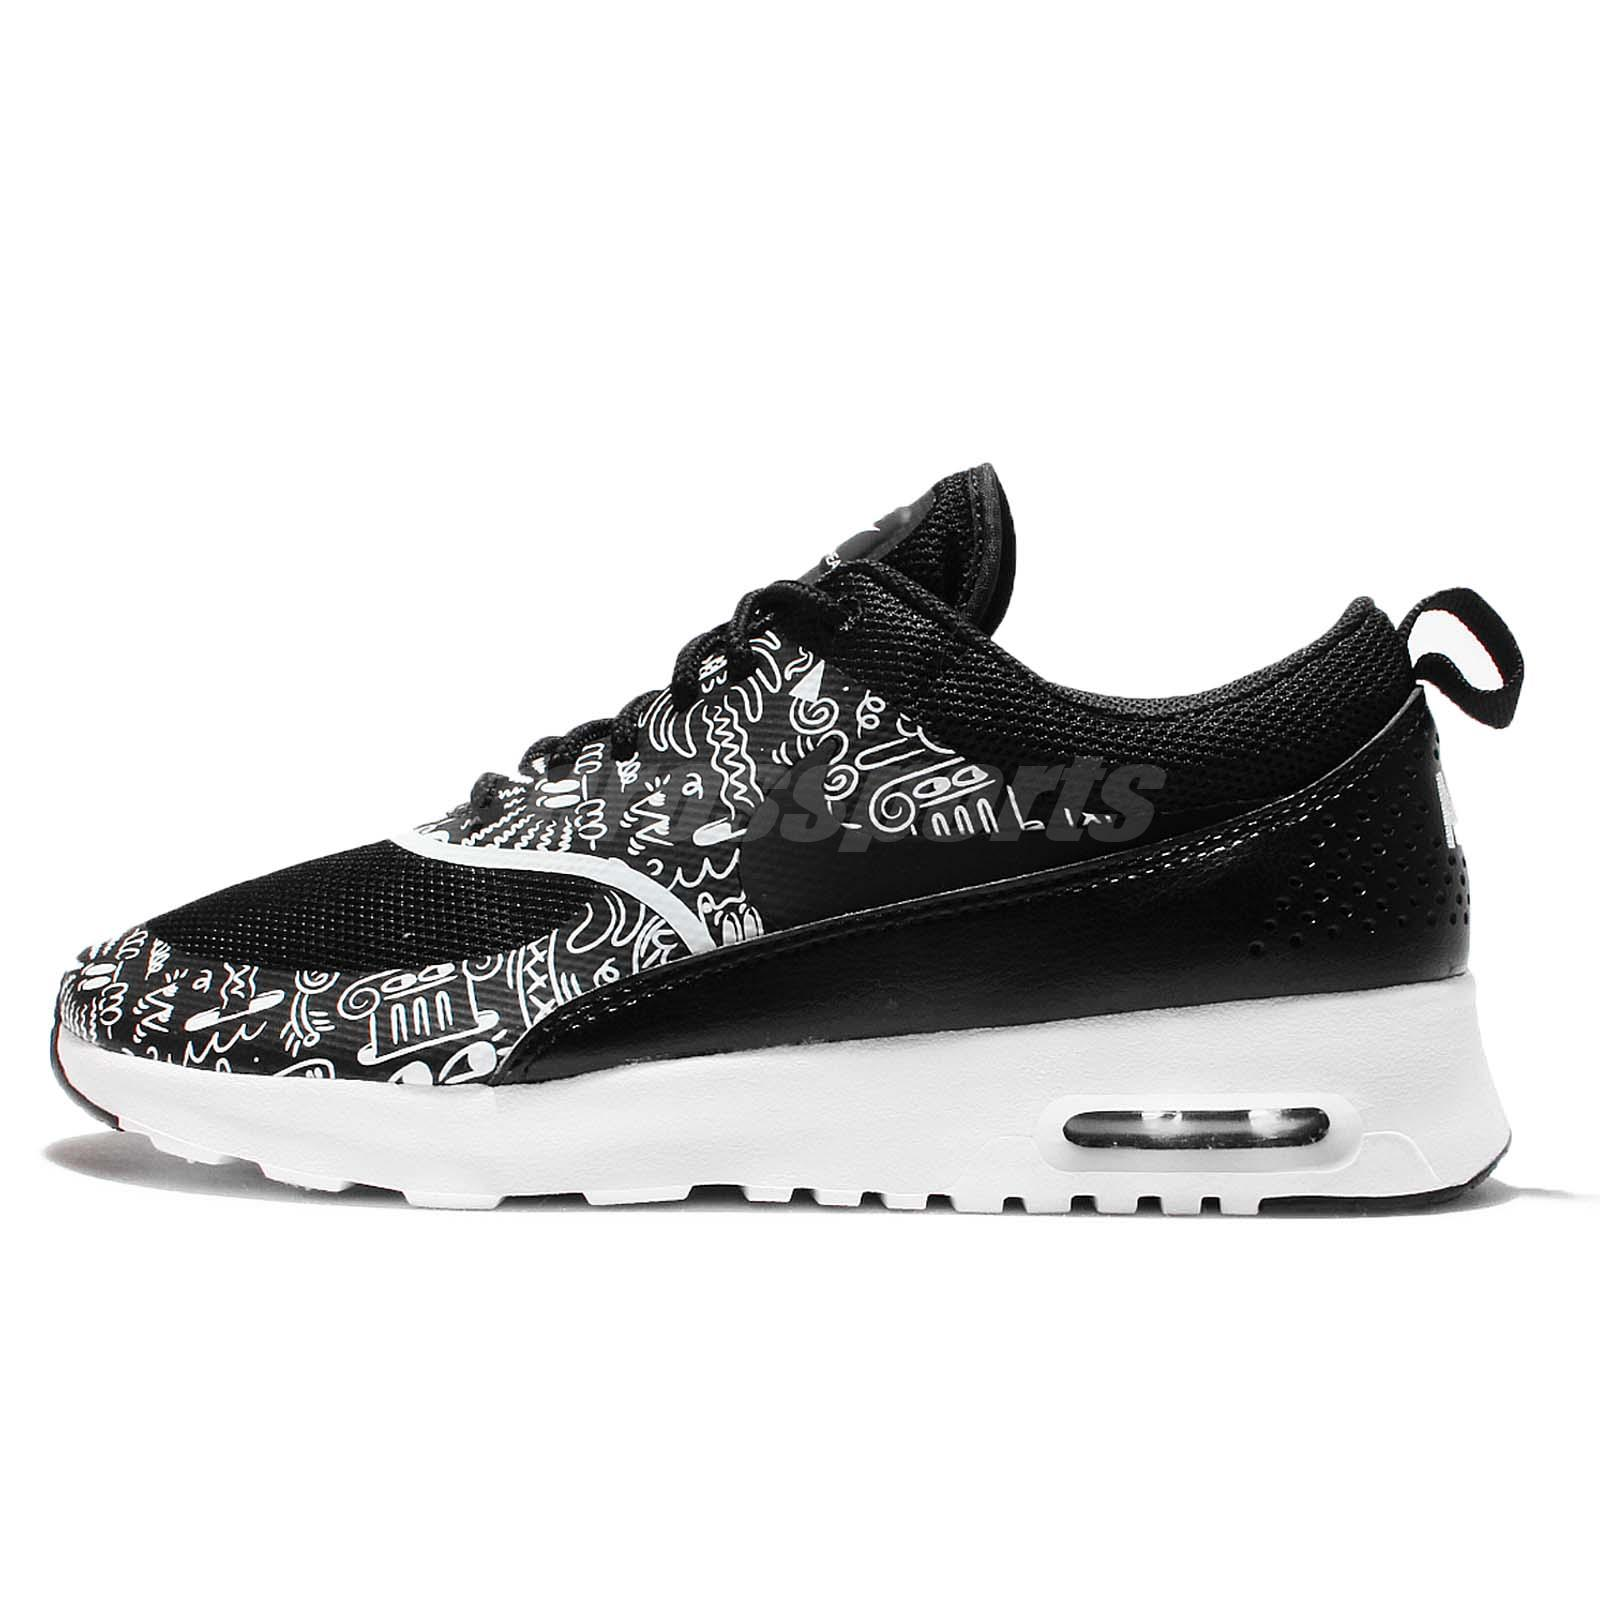 Wmns Nike Air Max Thea Print Black White Women Running Shoes Sneakers 599408 011